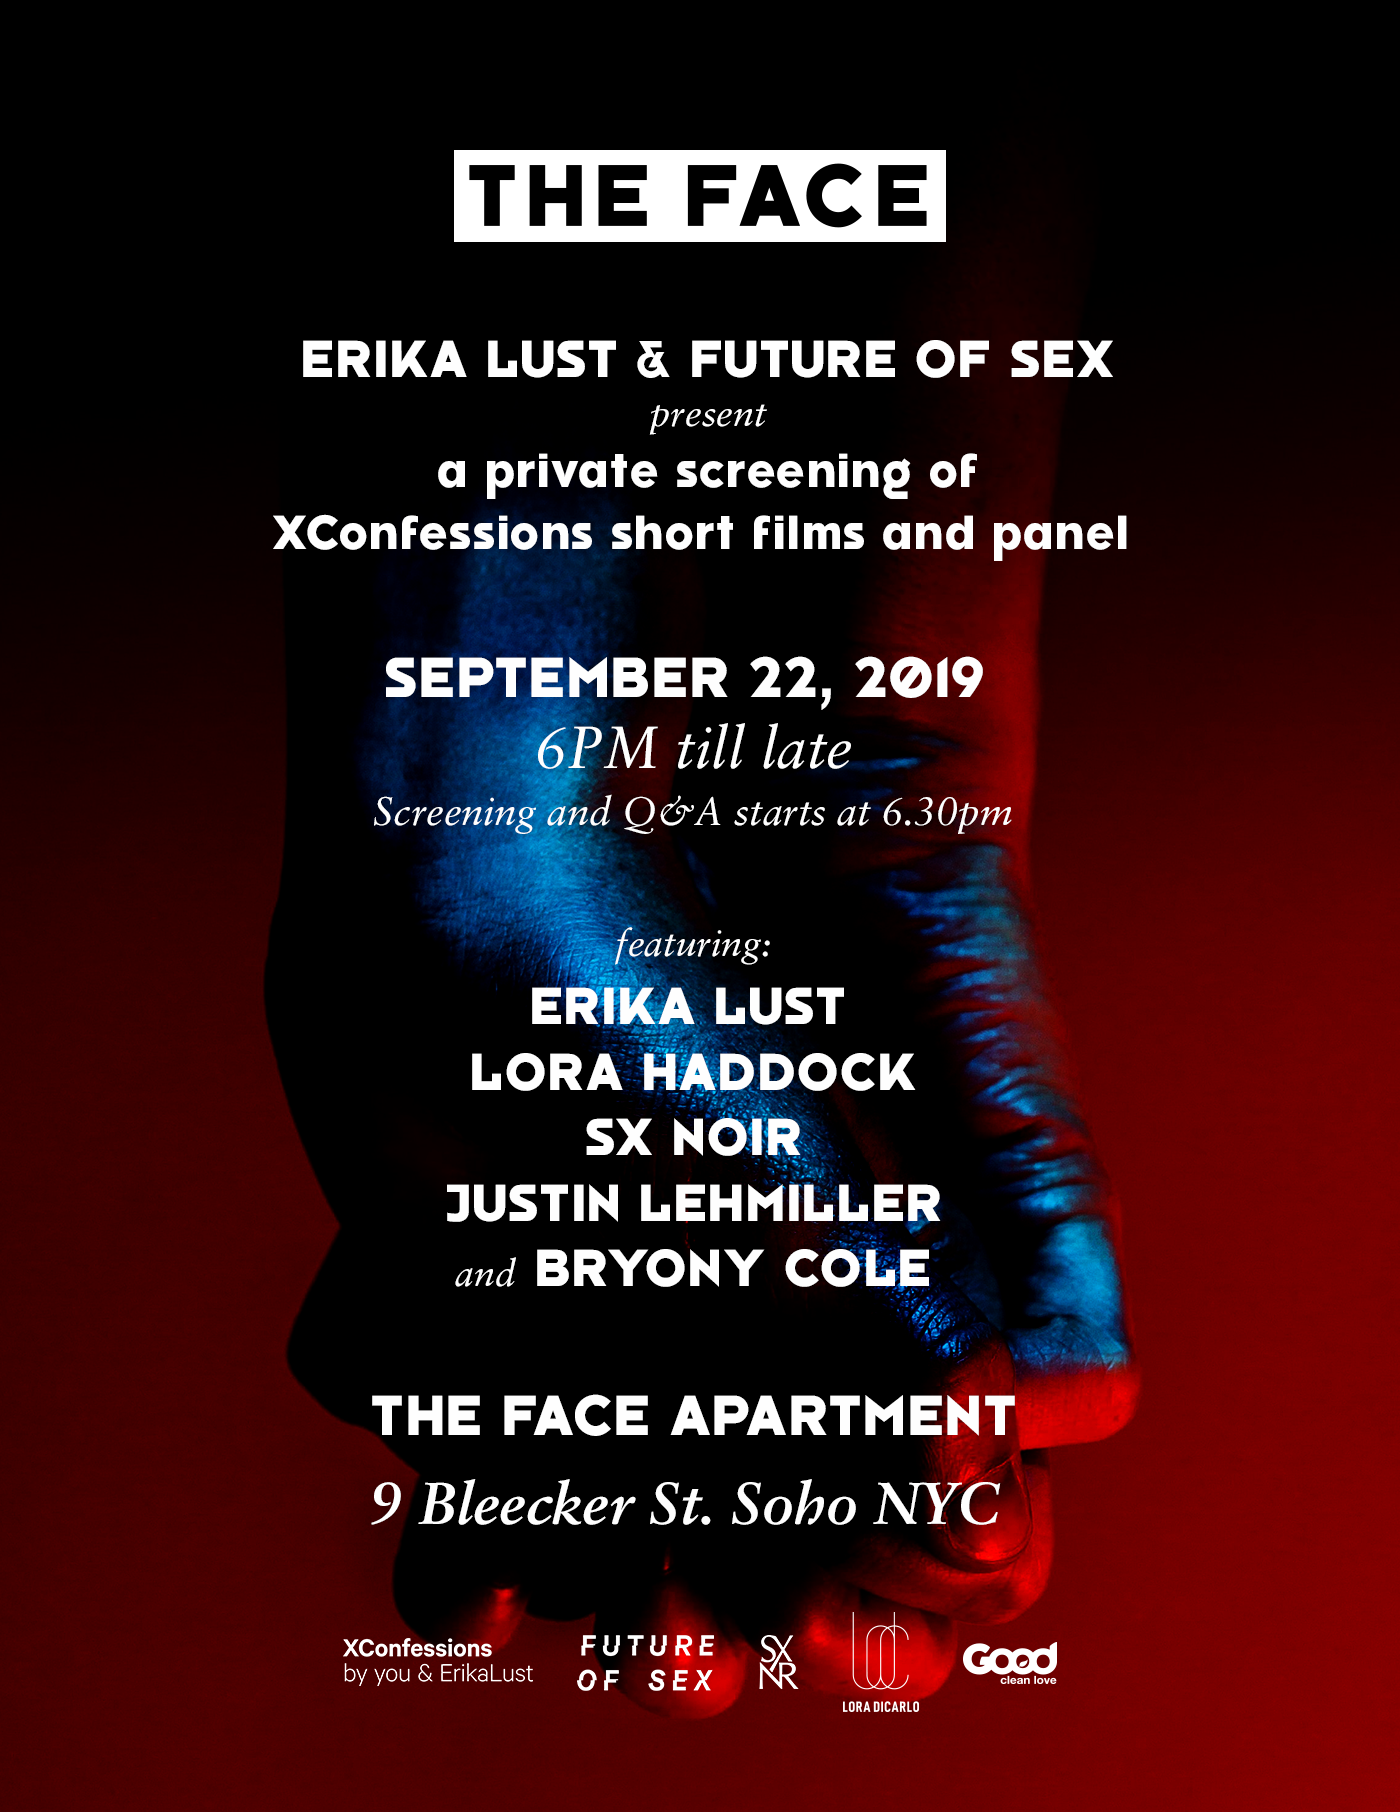 THEFACE_FUTUREOFSEX_INVITE_FINAL.png